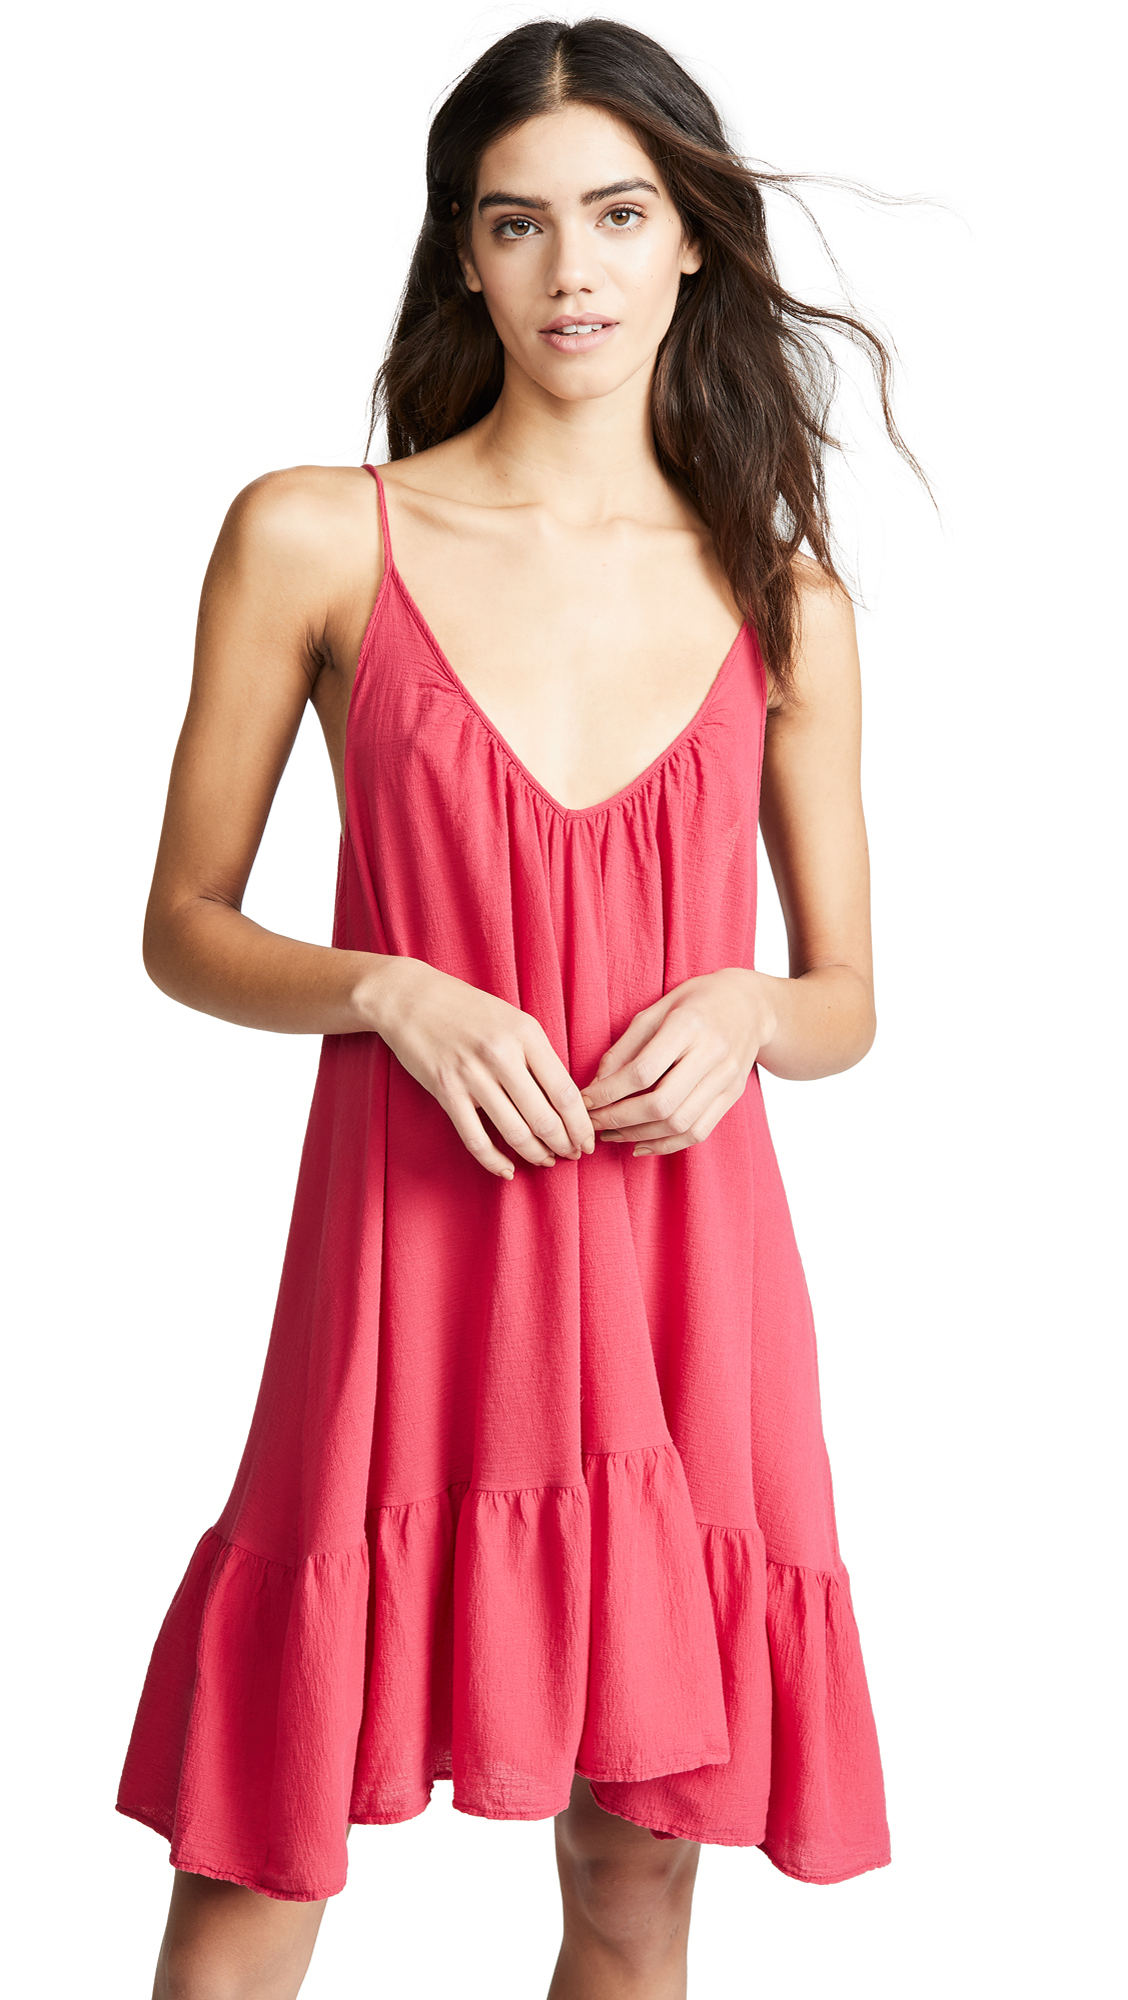 9SEED St. Tropez Dress in Cherry Red